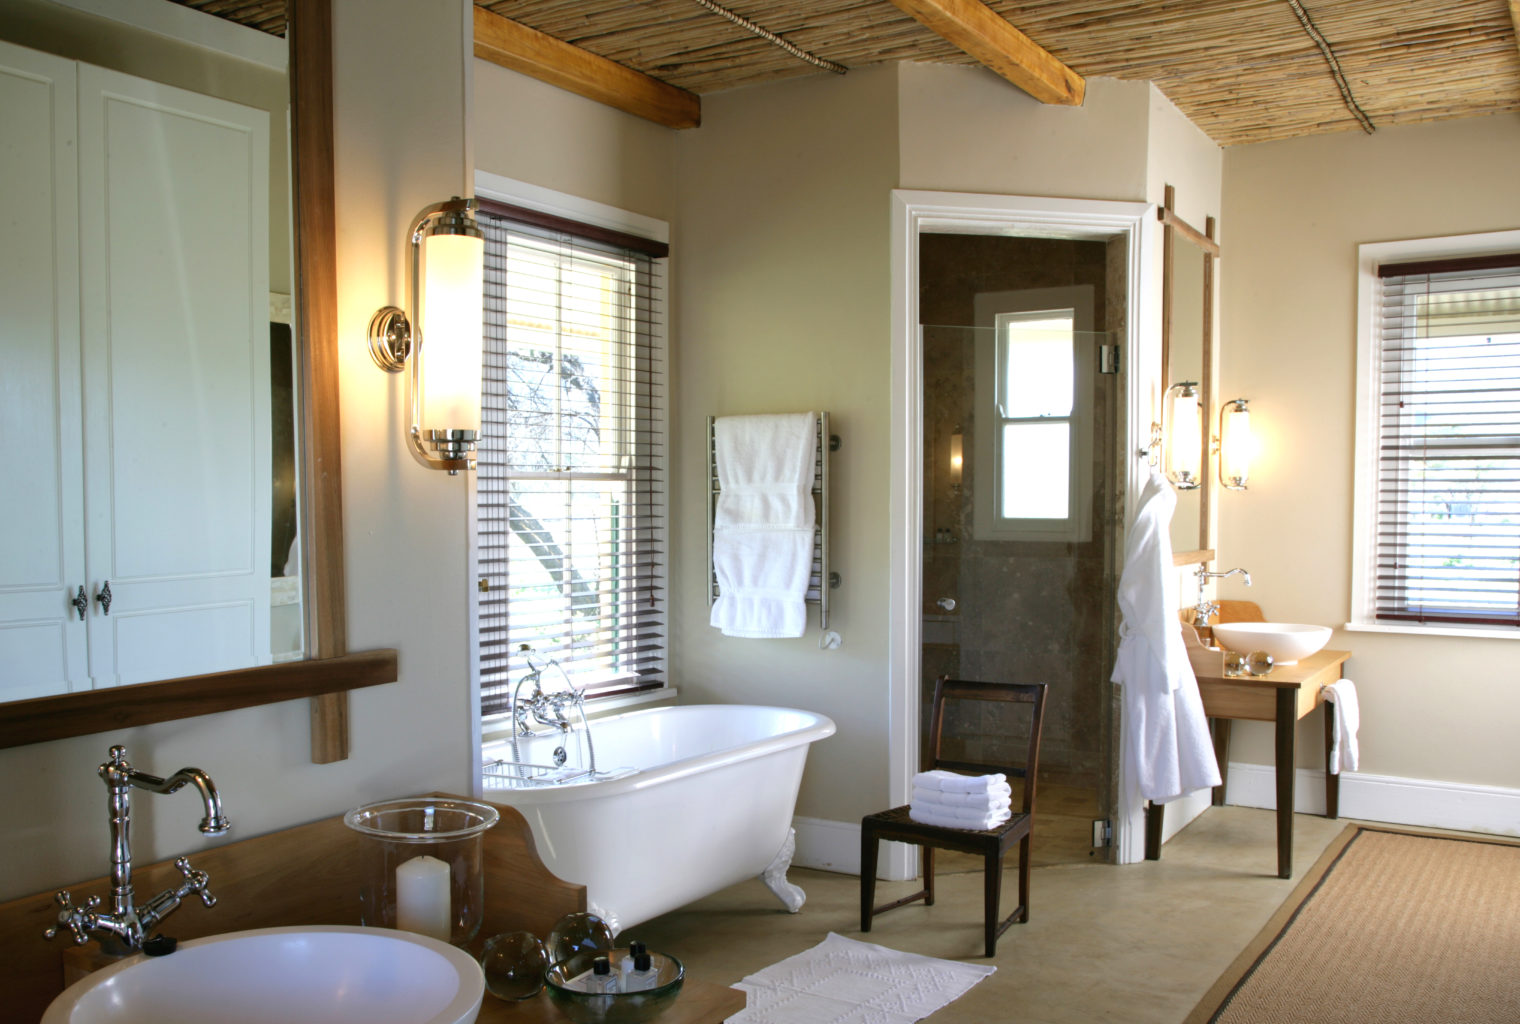 Bedroom, Karoo Lodge, South Africa